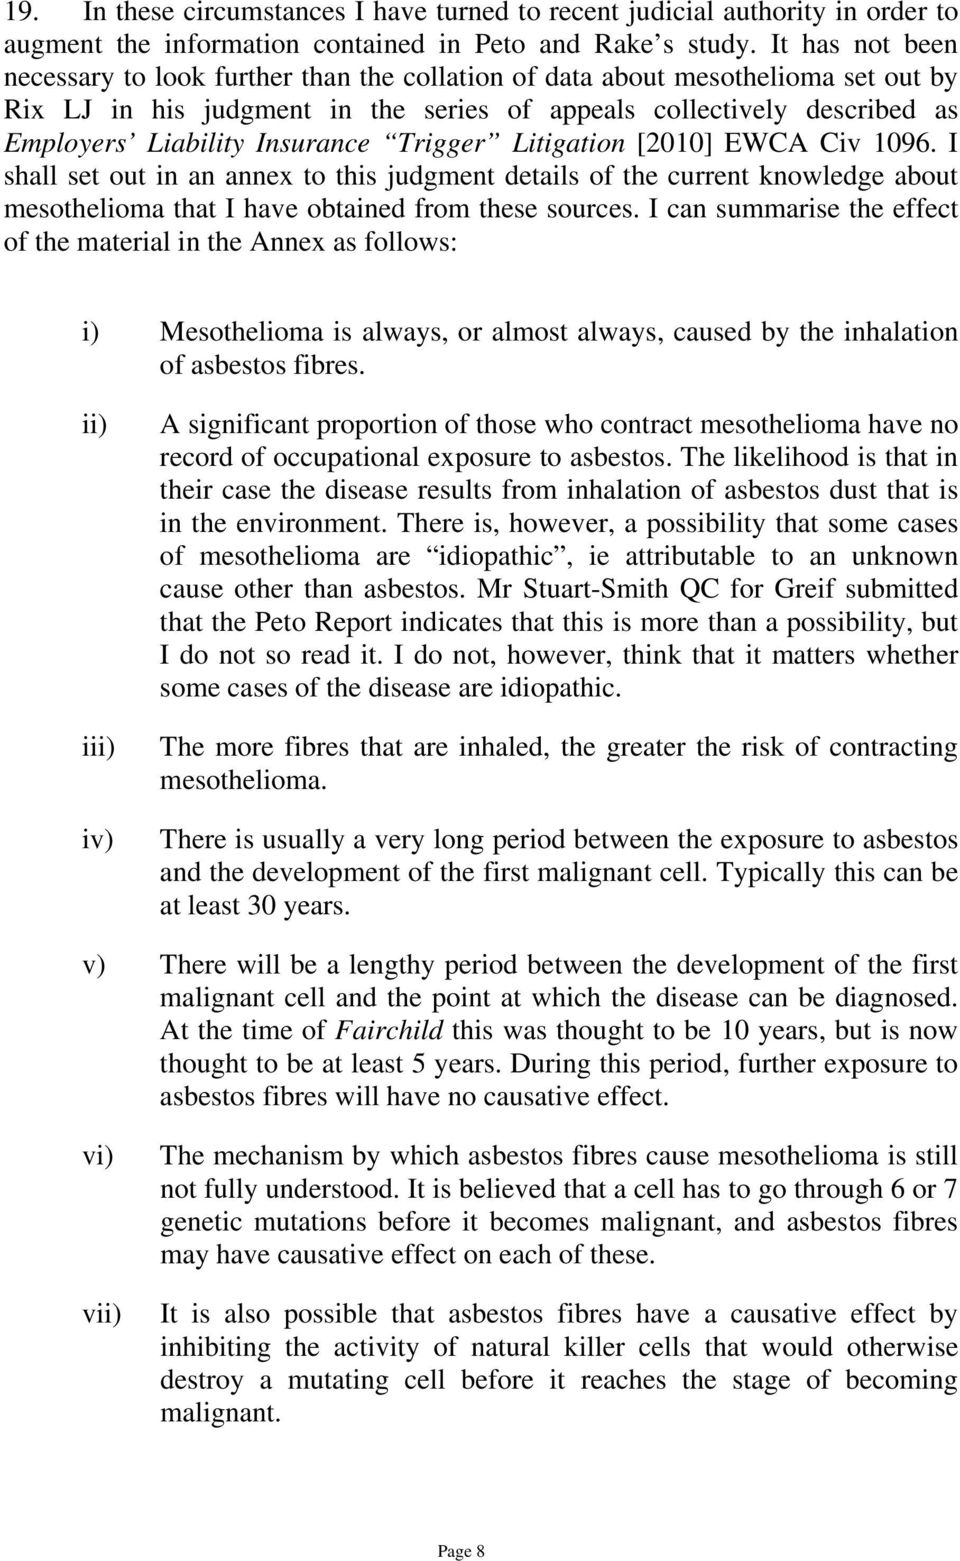 Insurance Trigger Litigation [2010] EWCA Civ 1096. I shall set out in an annex to this judgment details of the current knowledge about mesothelioma that I have obtained from these sources.